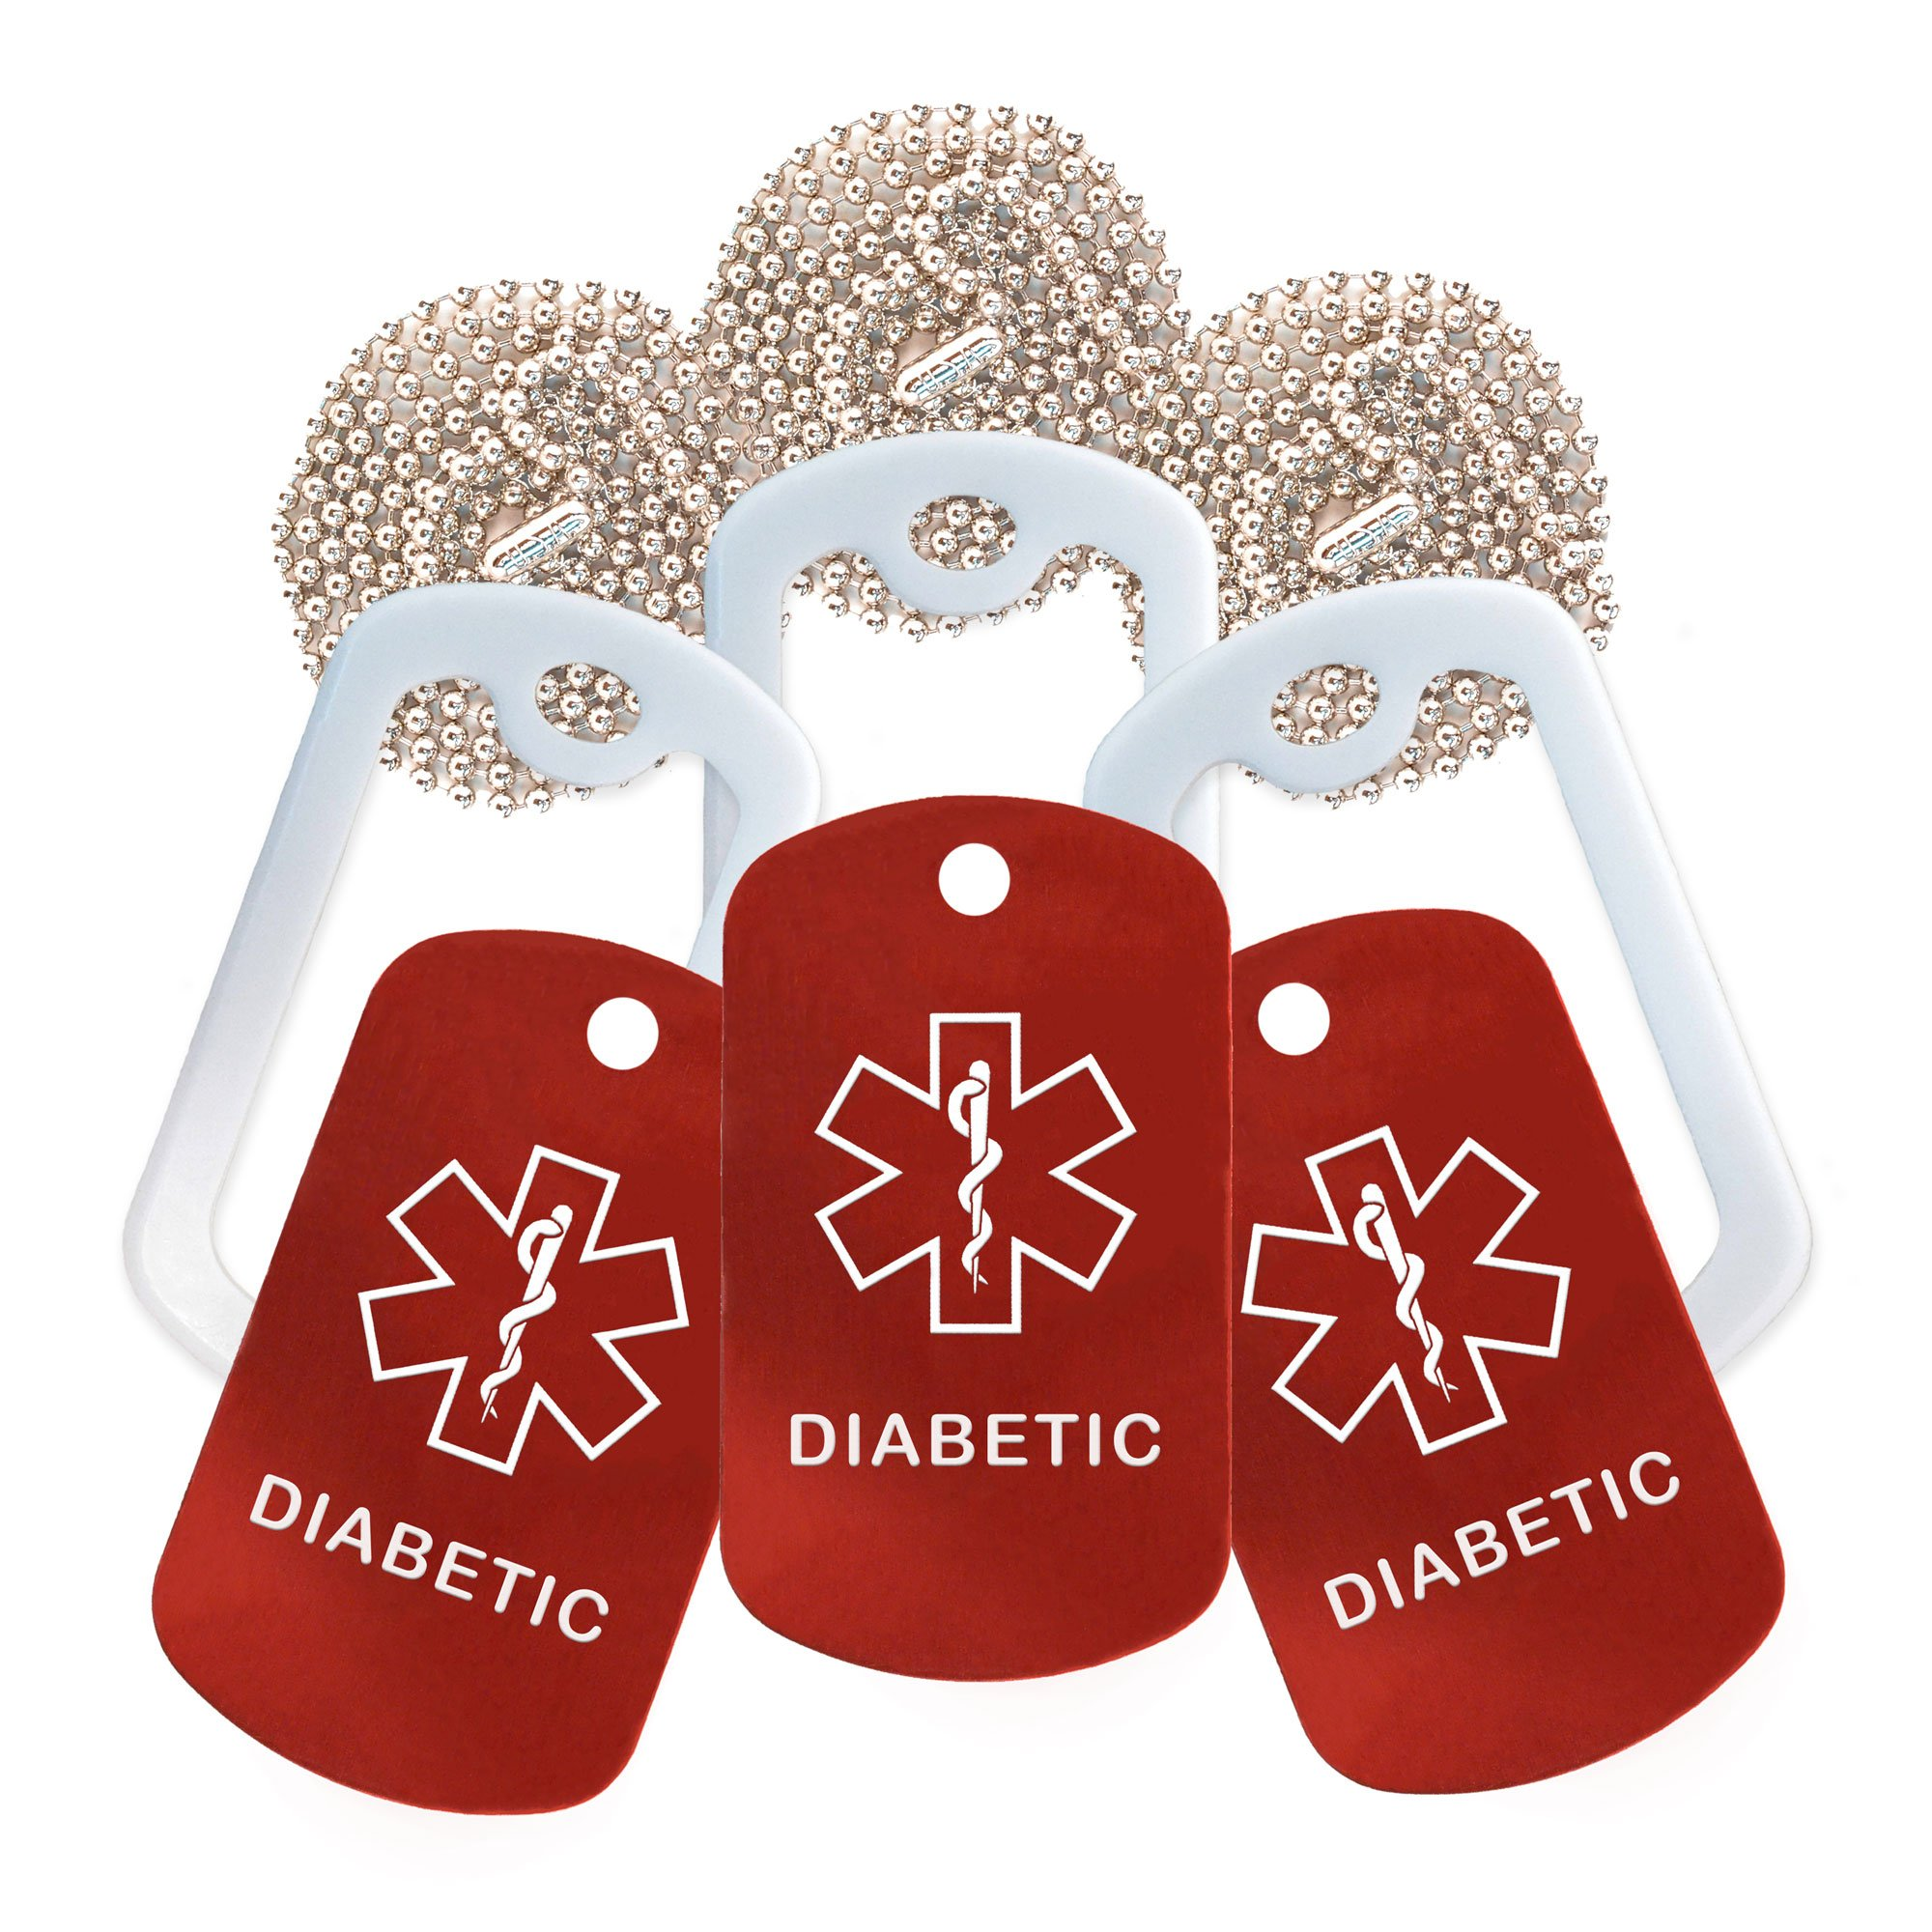 Diabetic Medical Alert ID Necklace - 3 Pack - Red Tag, White Silencer, and 30'' USA Chain - 154 Colors Choices